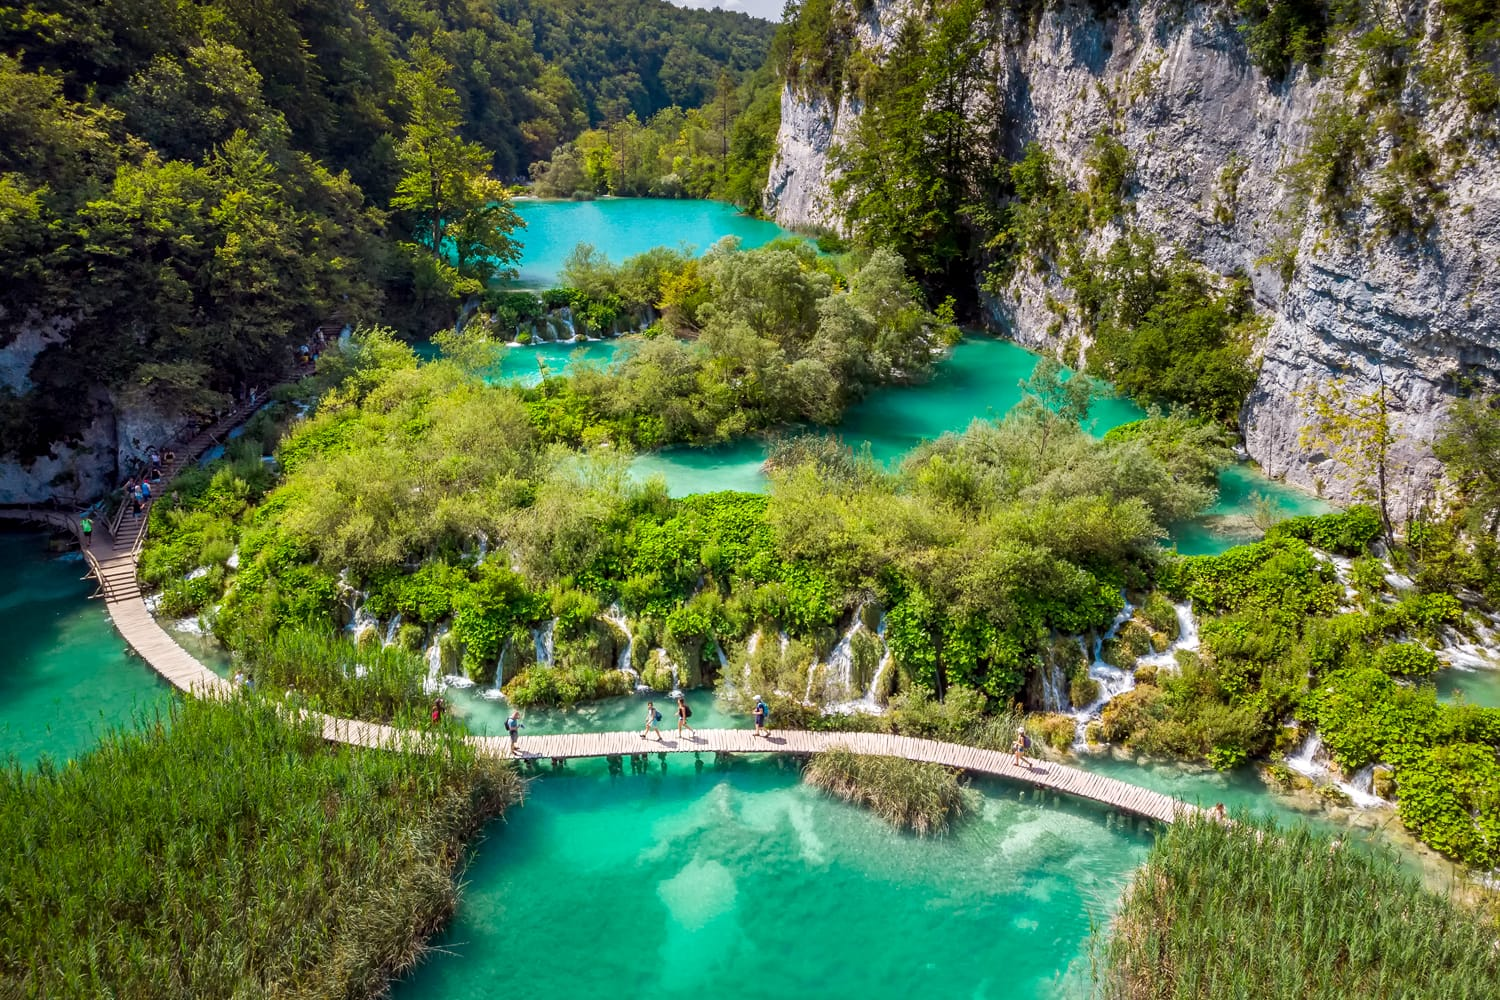 Several waterfalls of one of the most astonishing Plitvice Lakes, Croatia.